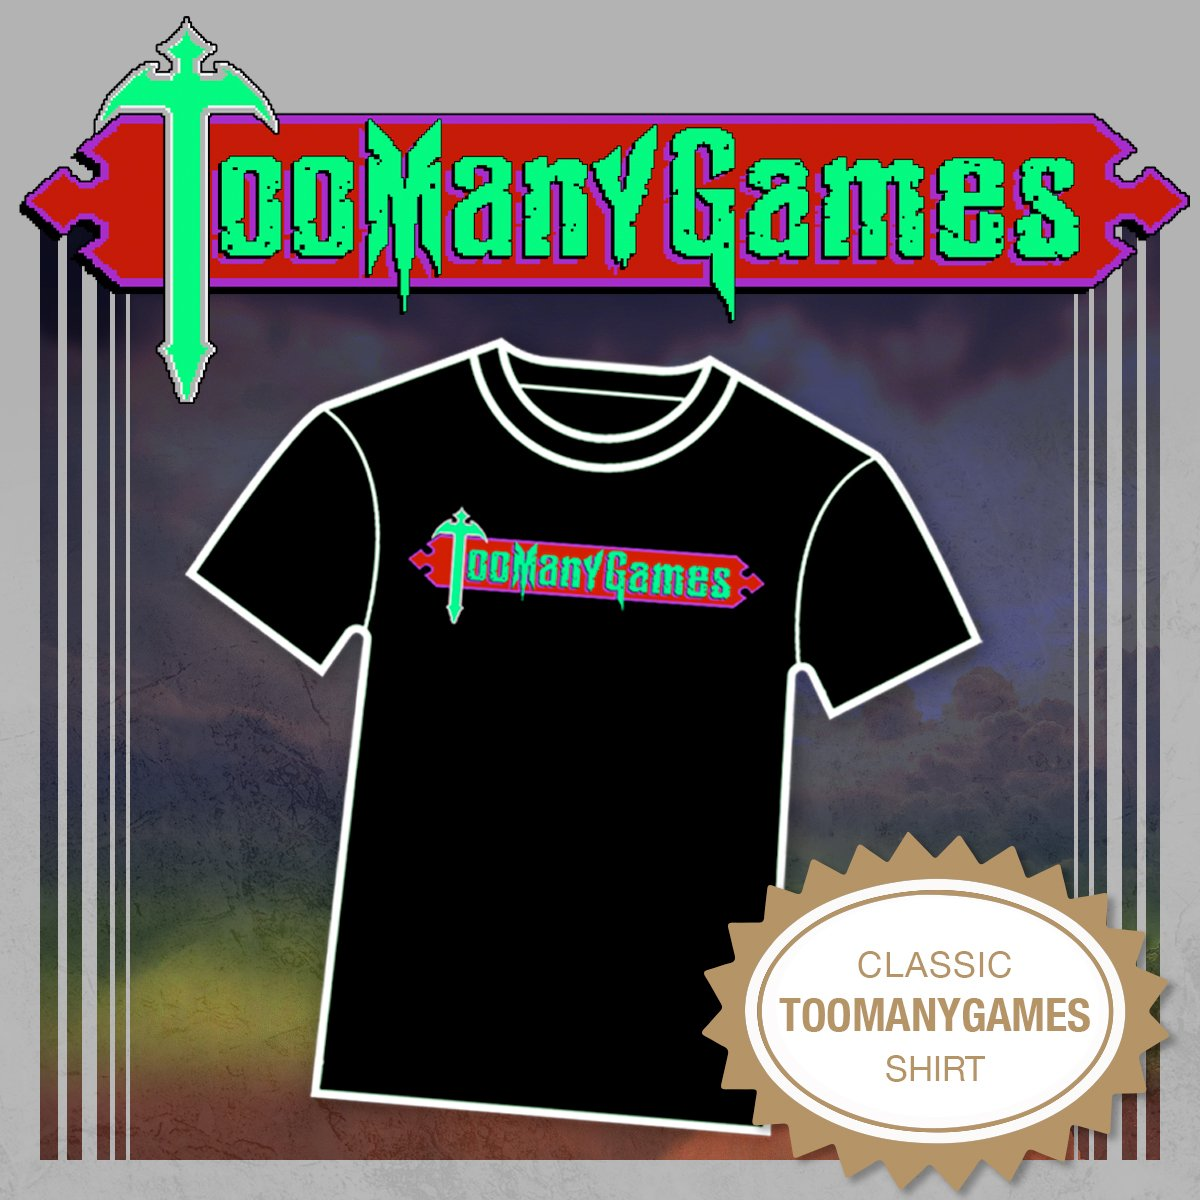 TooManyGames (@TooManyGames) | Twitter